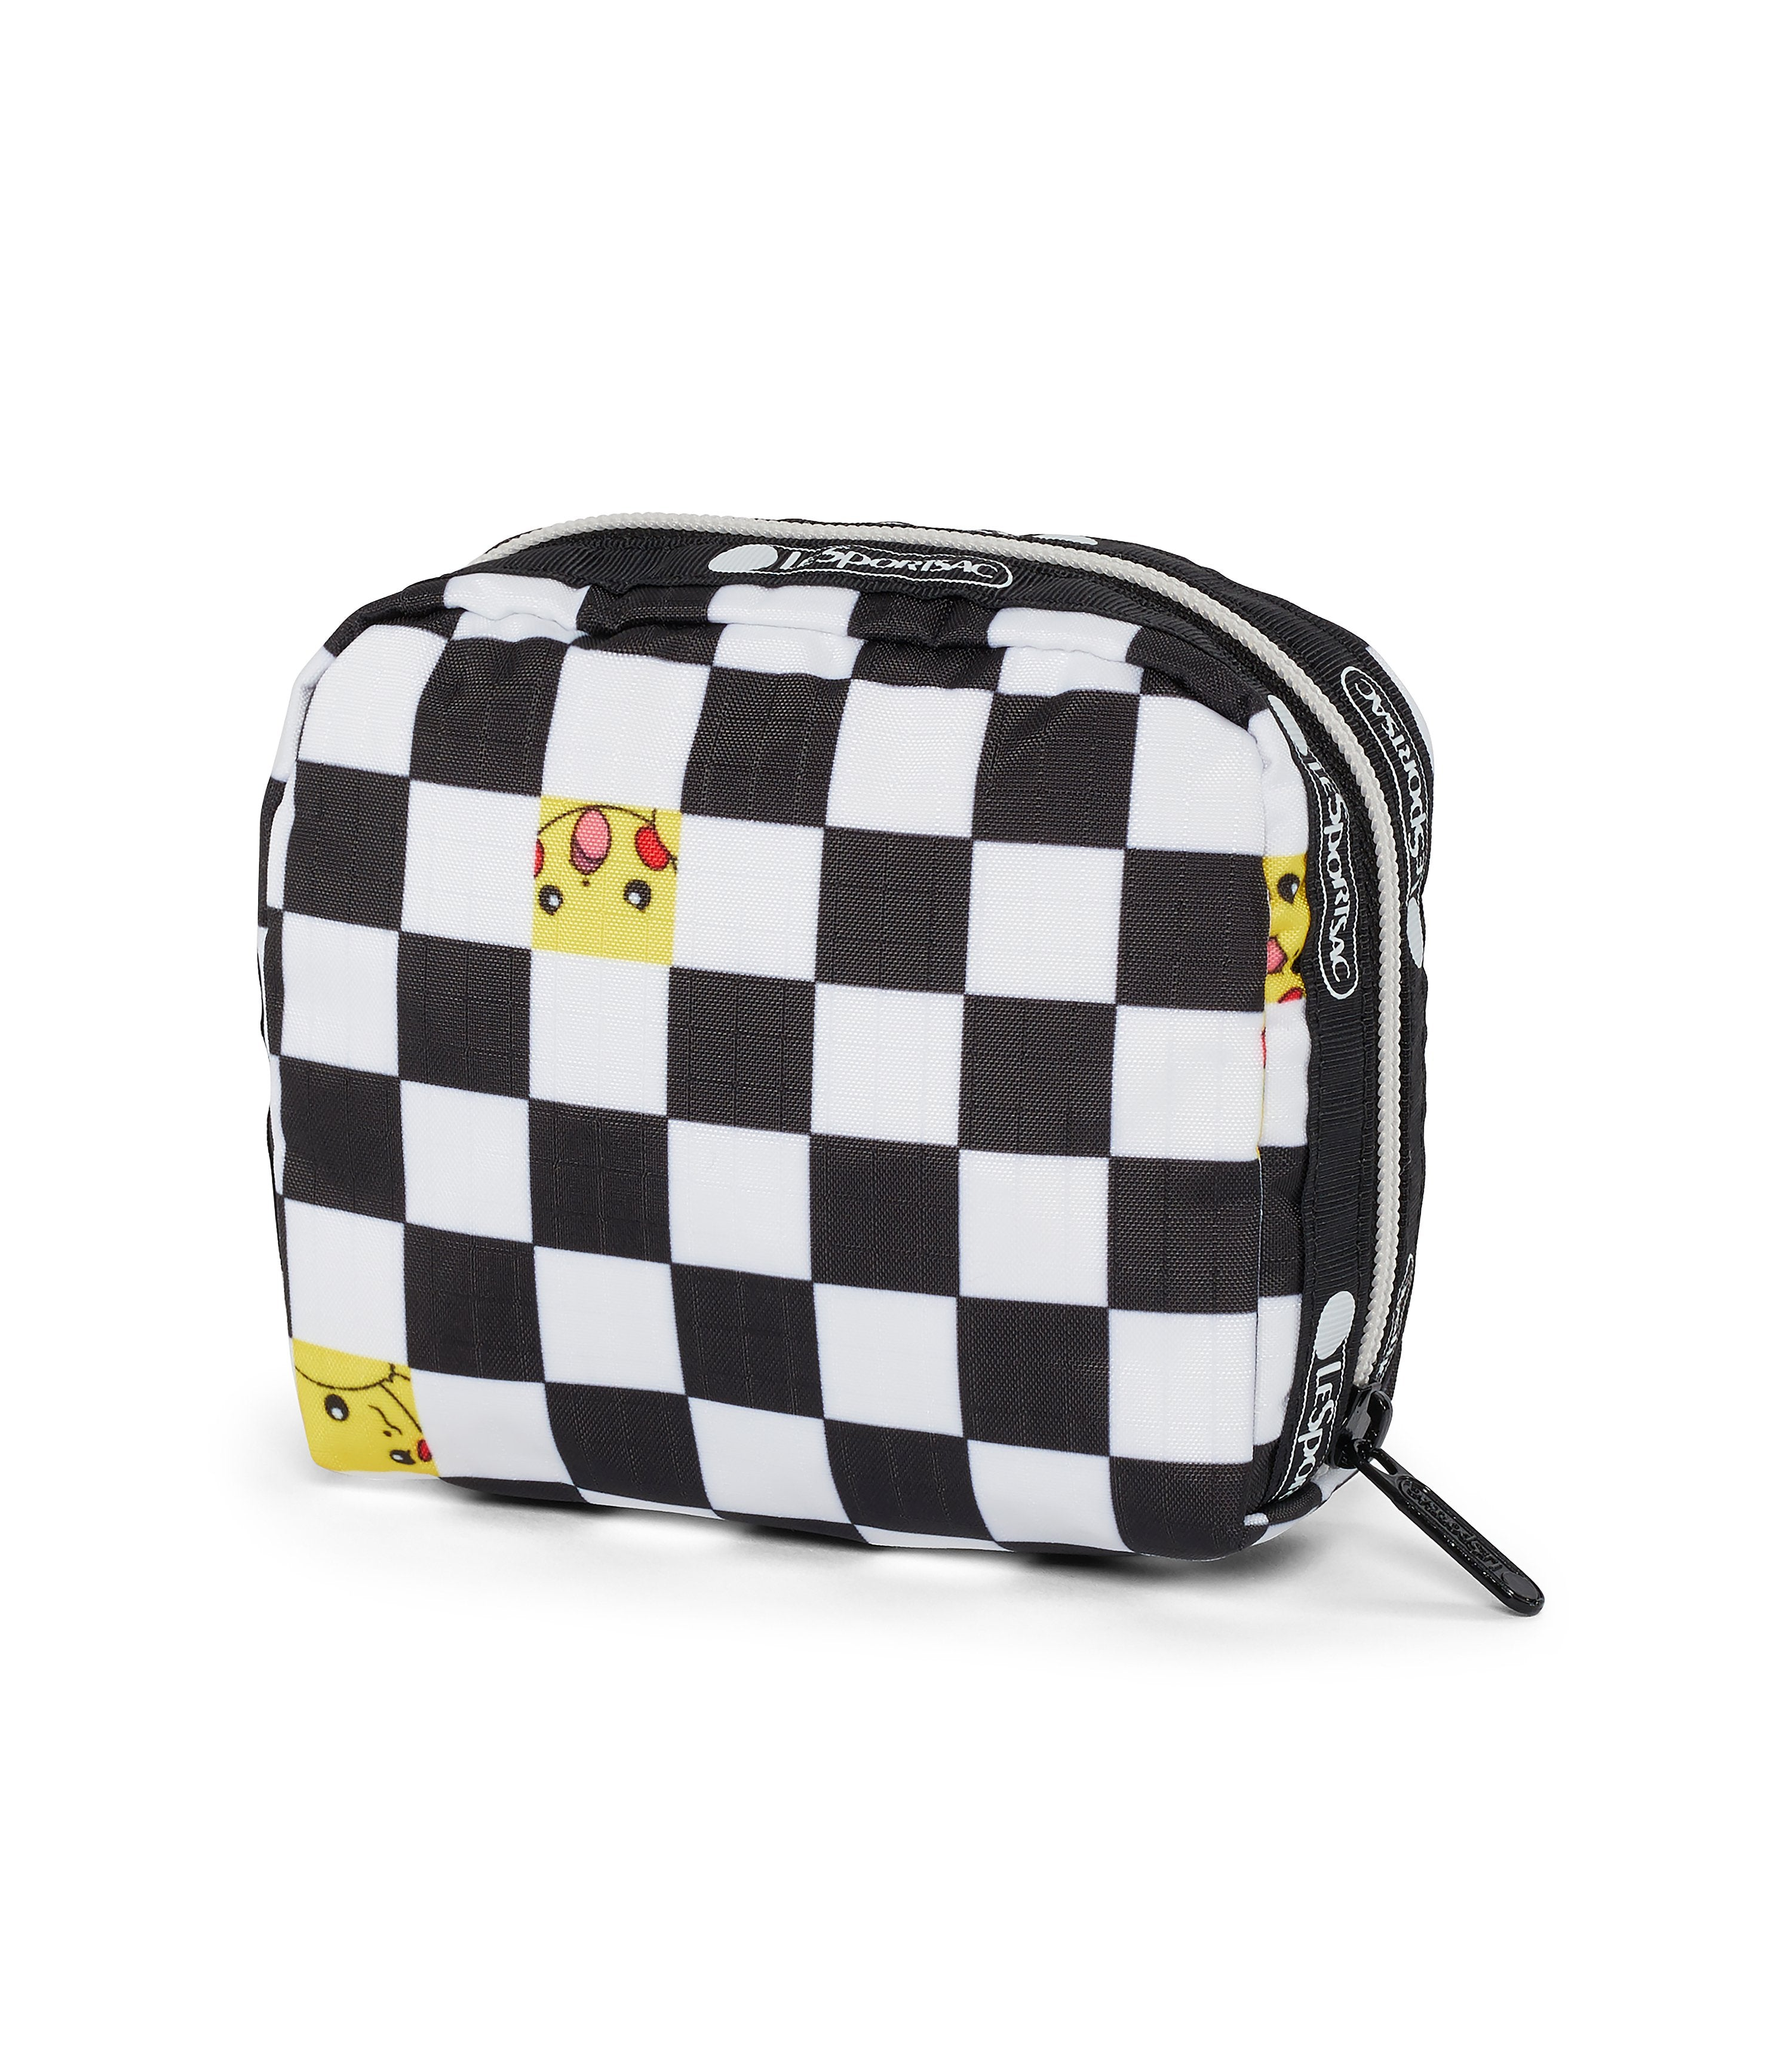 Pokémon Square Cosmetic-LeSportsac-Small-Pikachu-Pouch-front